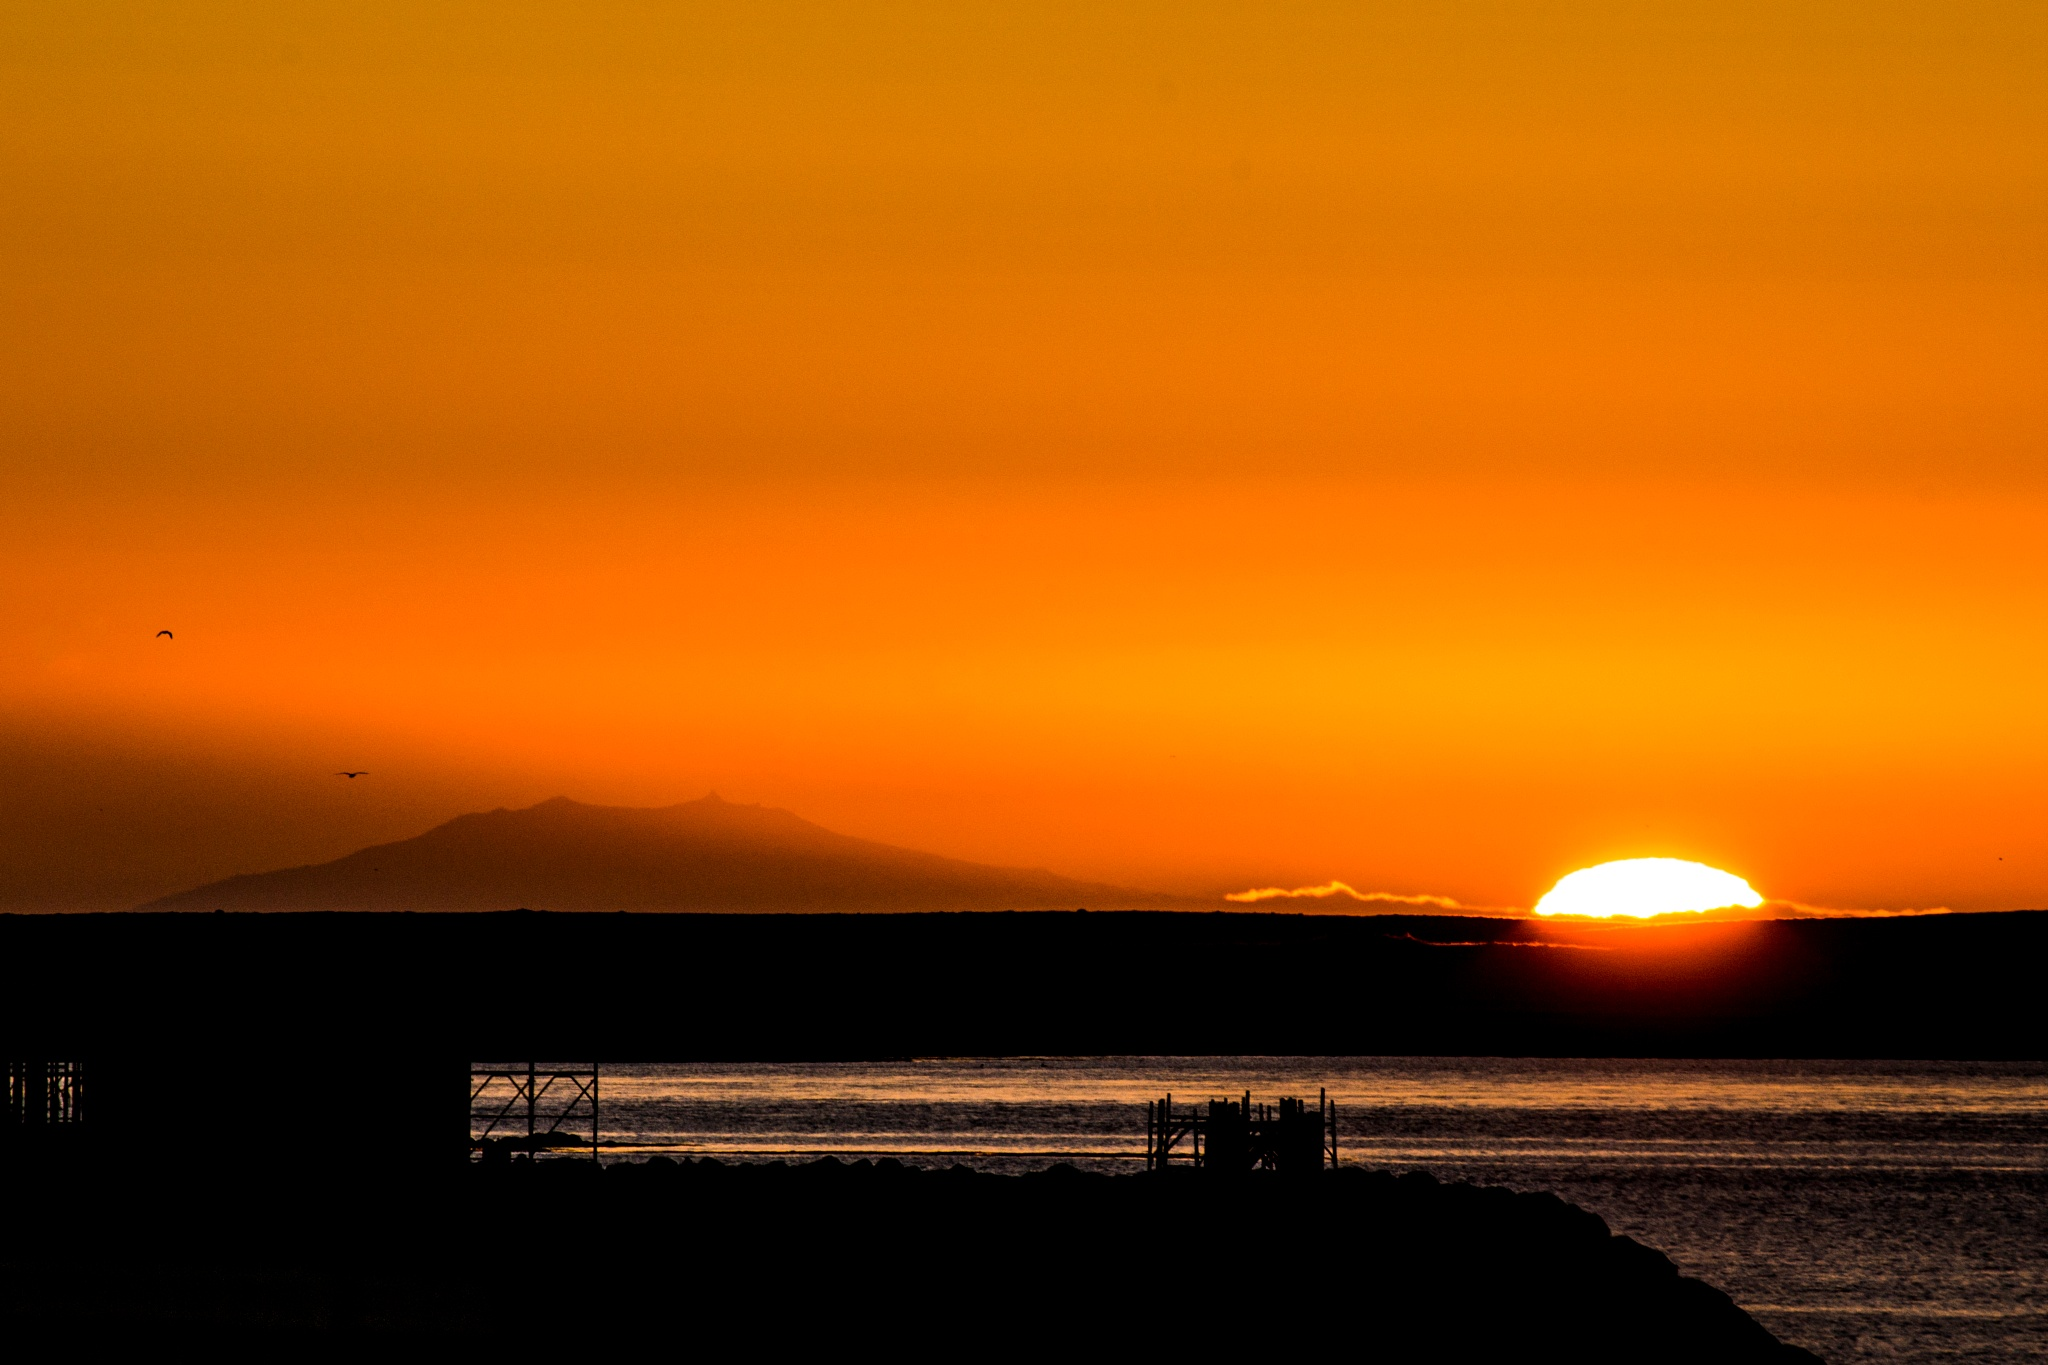 The sun is going to sleep by albert.o.gudbrandsson